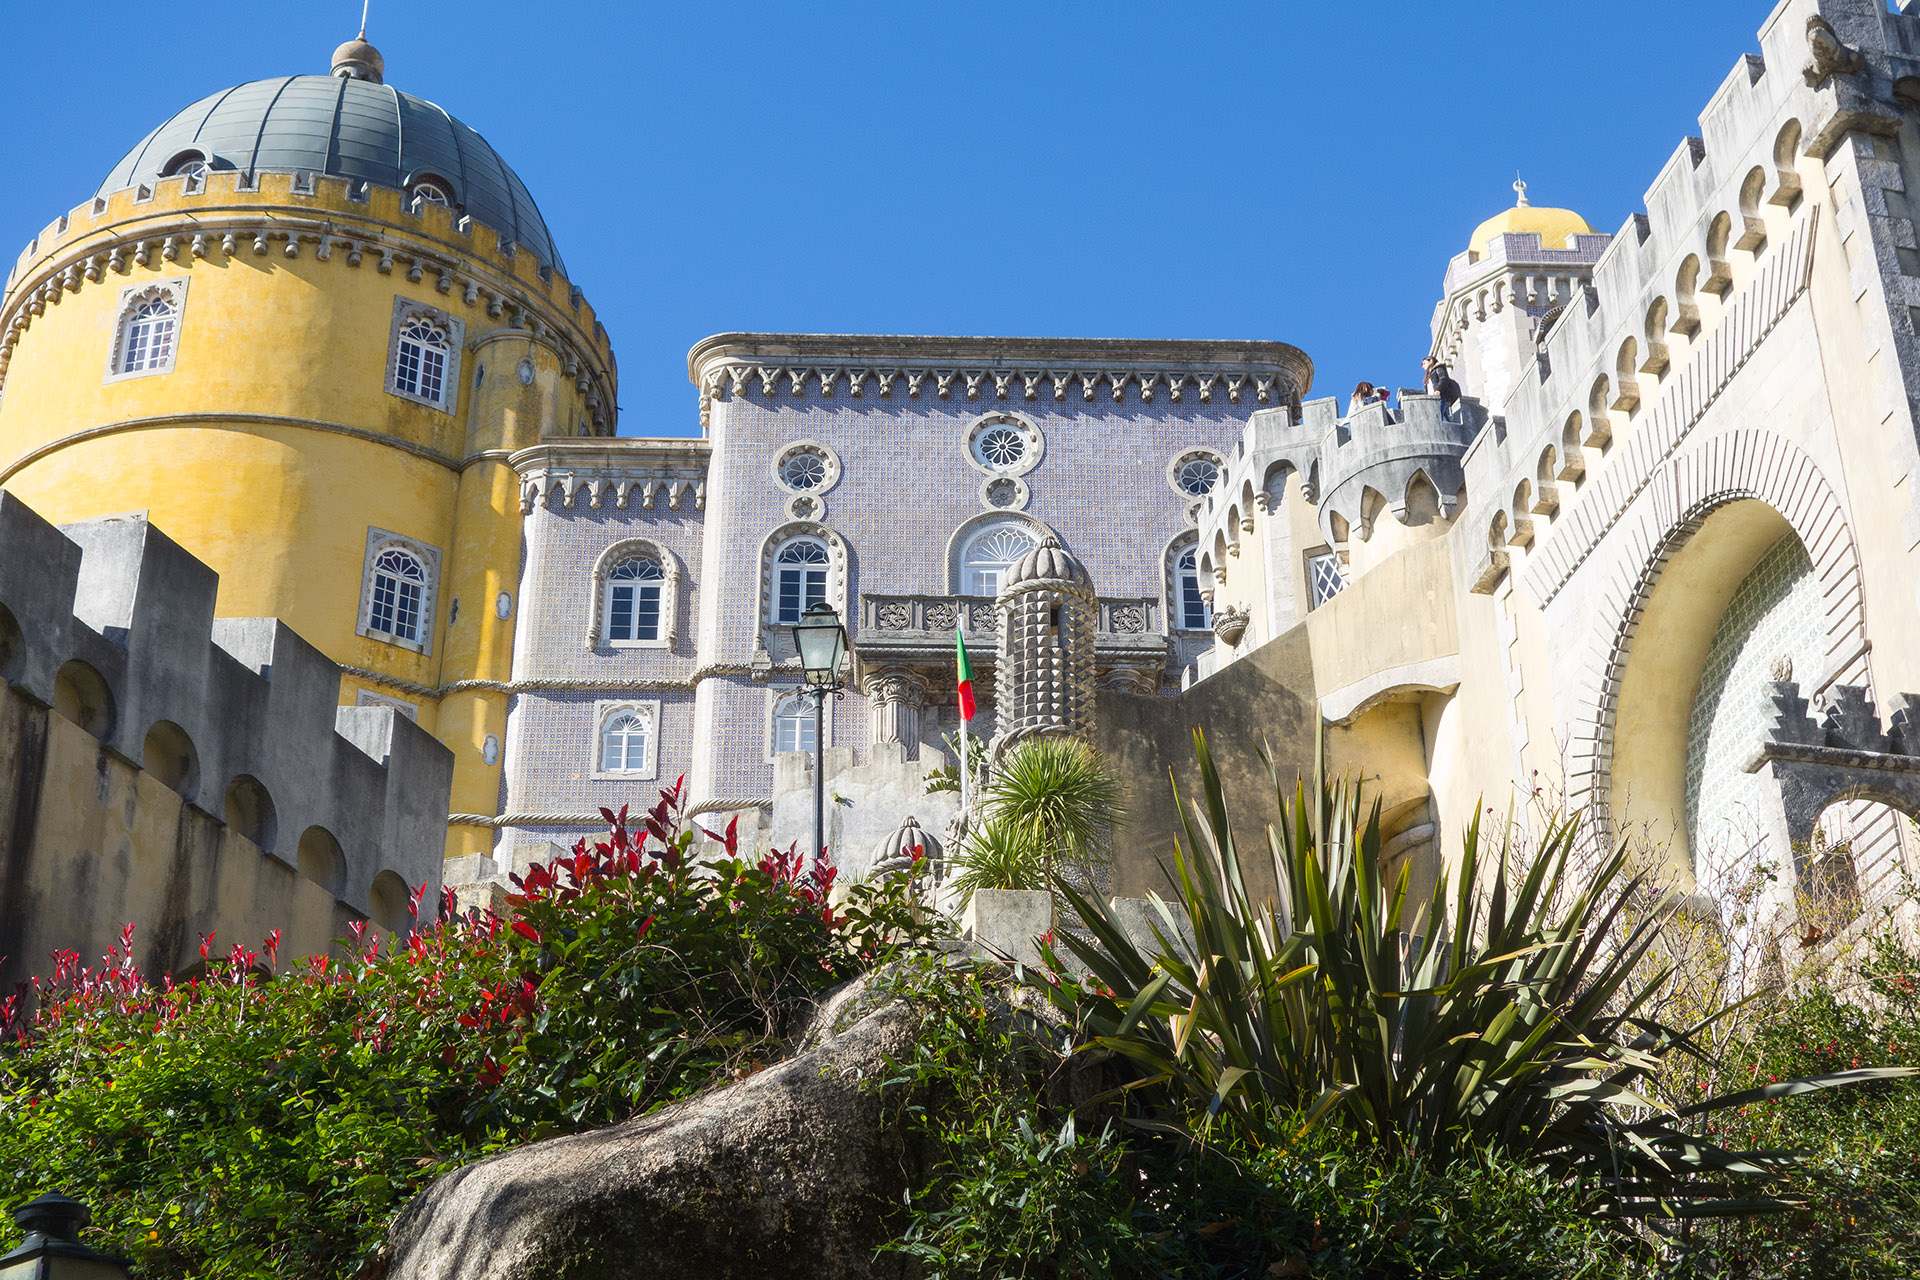 Just before the entrance to Pena Palace.